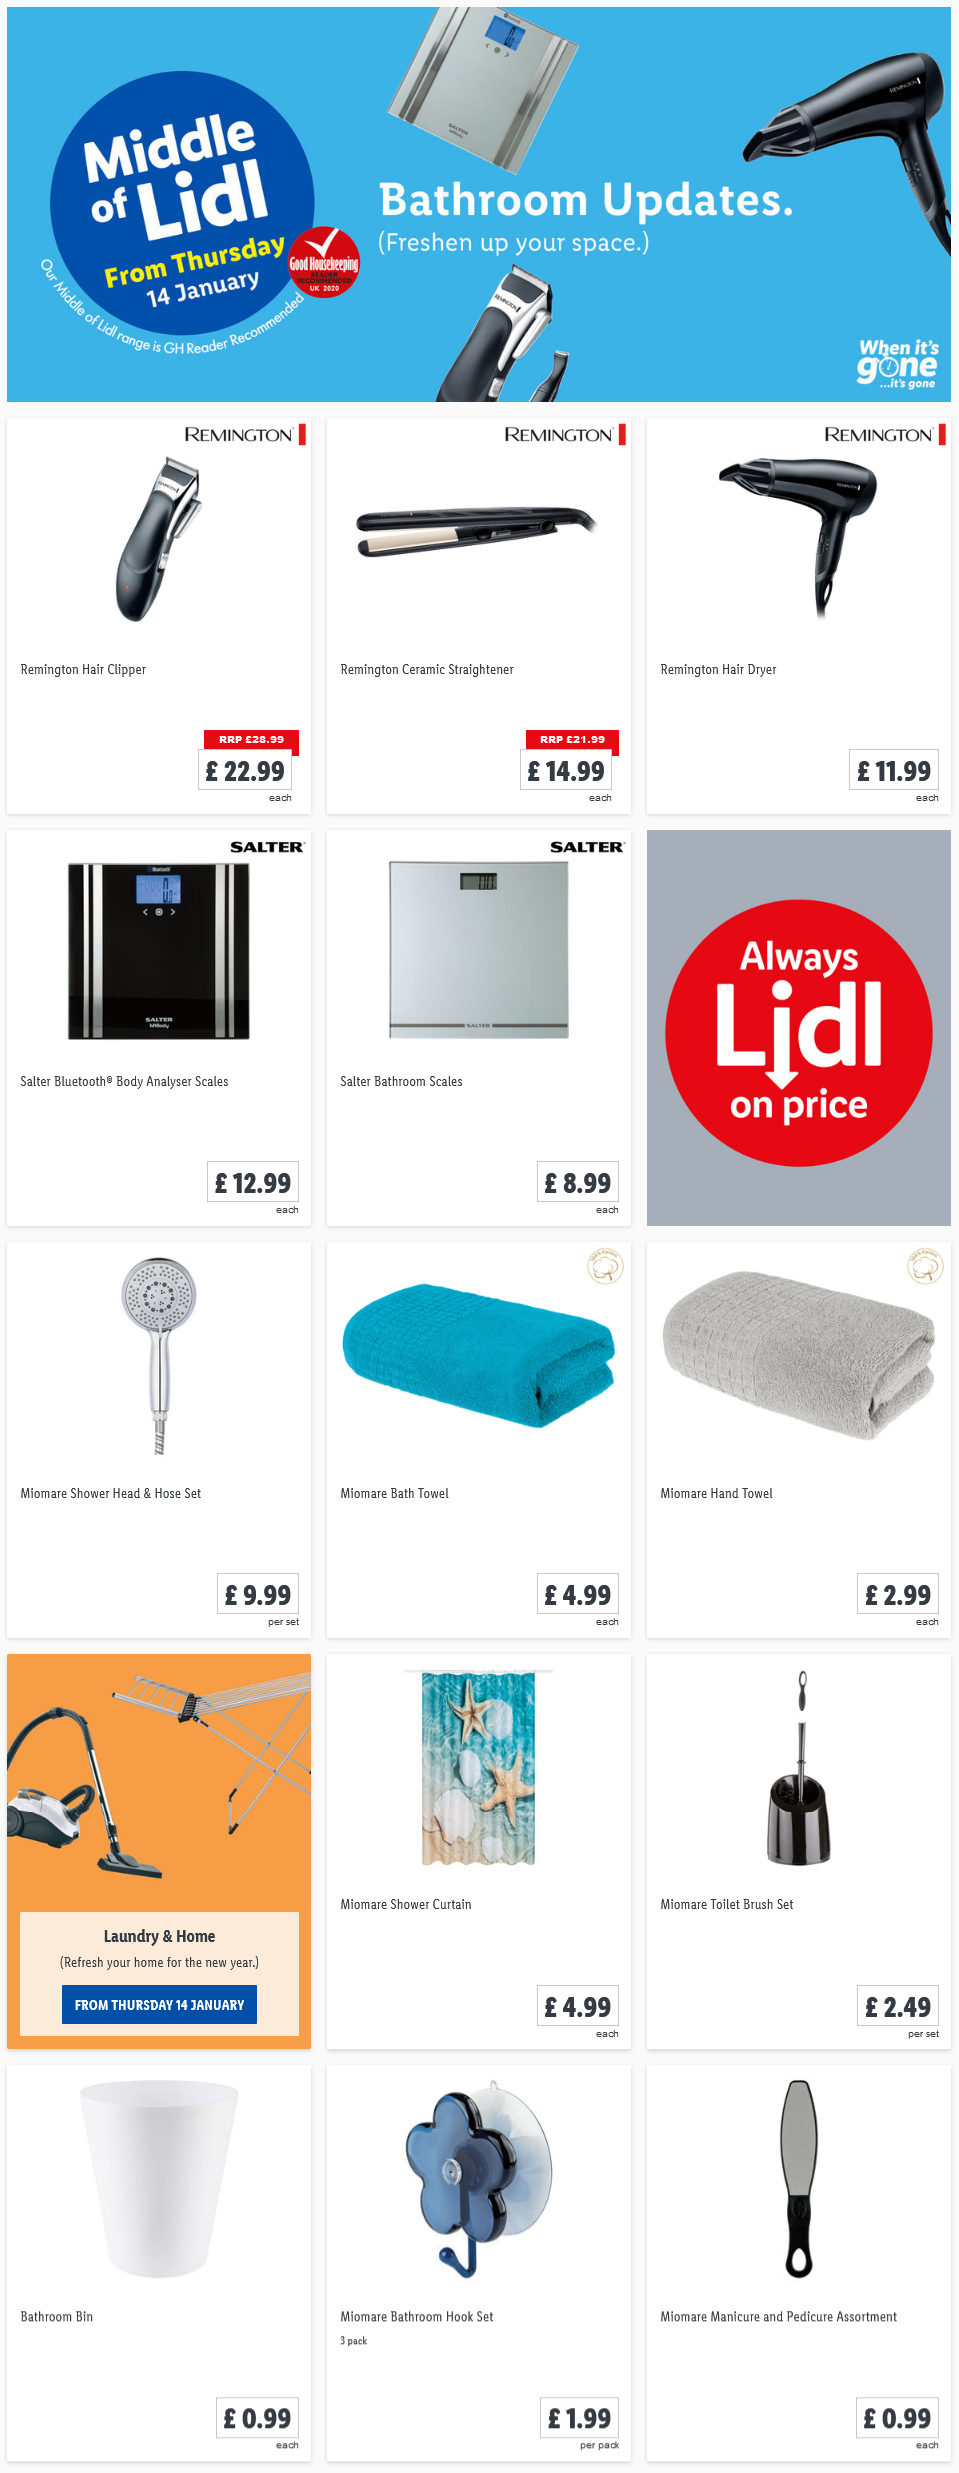 LiDL Bathroom Updates From 14th January 2021 LIDL Offers this Thursday